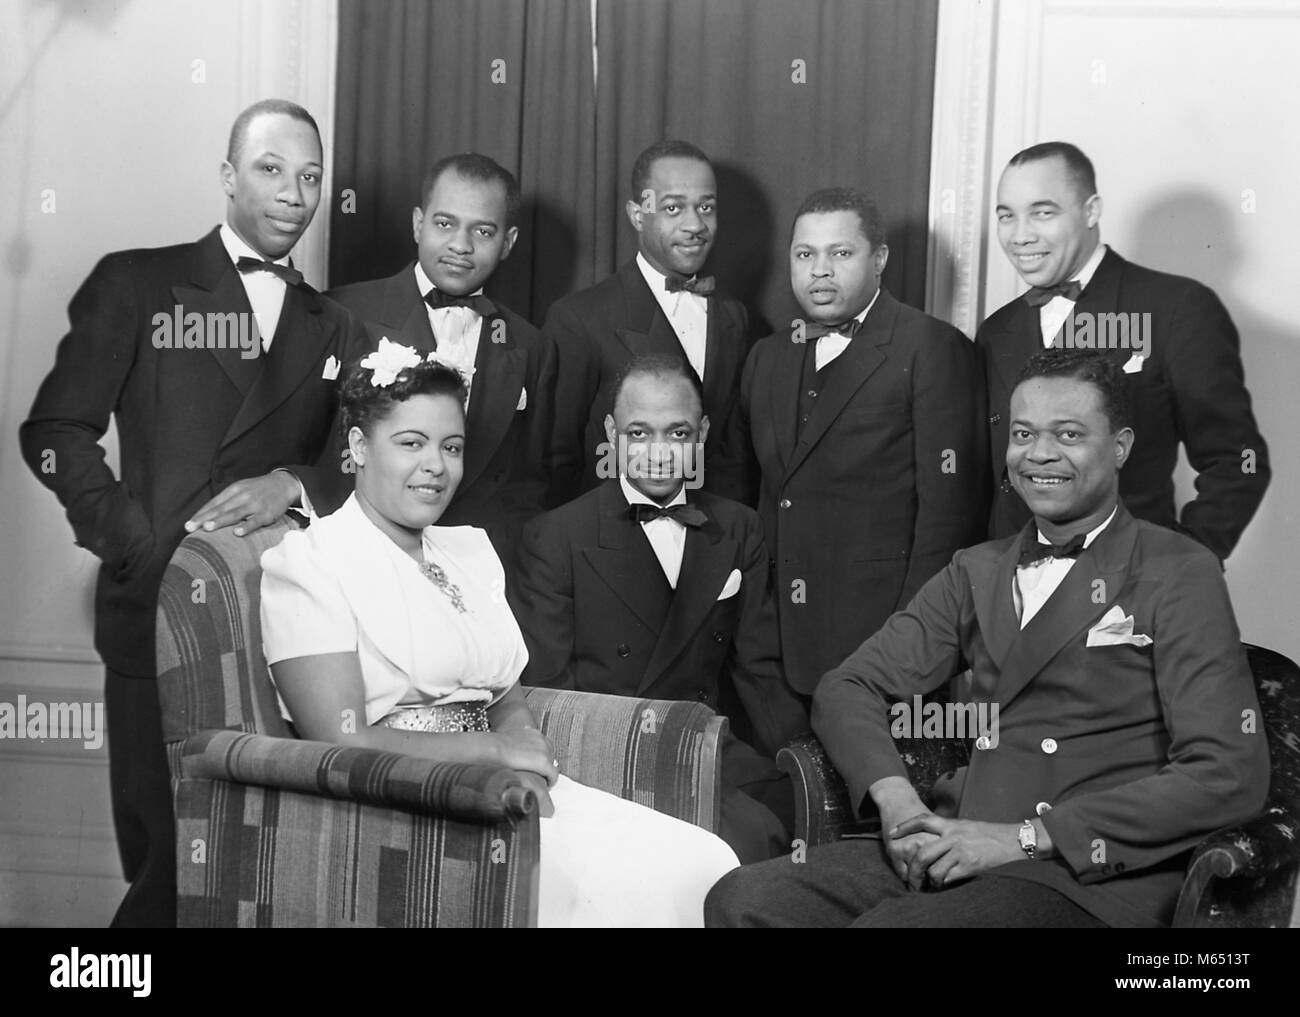 Black and white group portrait photograph of famous african american musicians including singer songwriter billie holiday wearing a pale dress and a